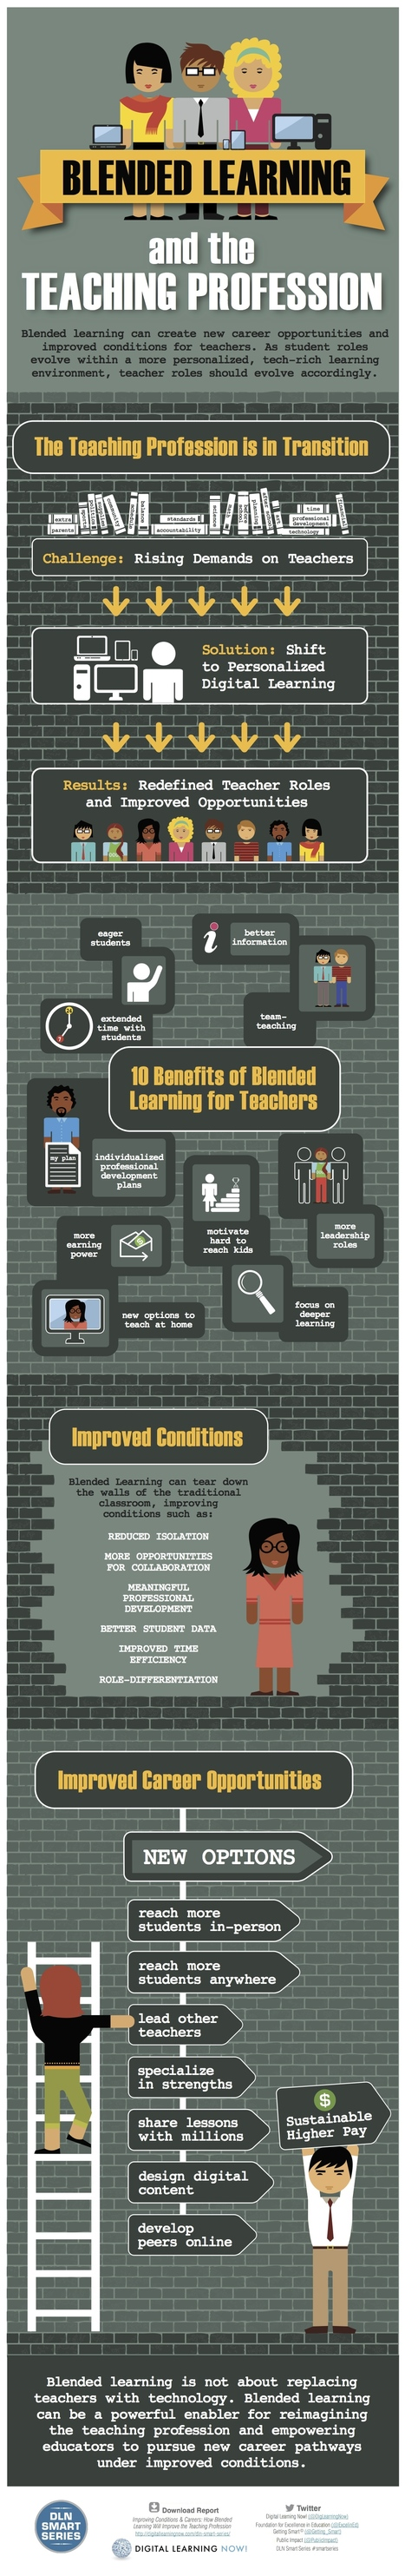 Blended Learning & The Teaching Profession [Infographic] | Inteligencia Colectiva | Scoop.it